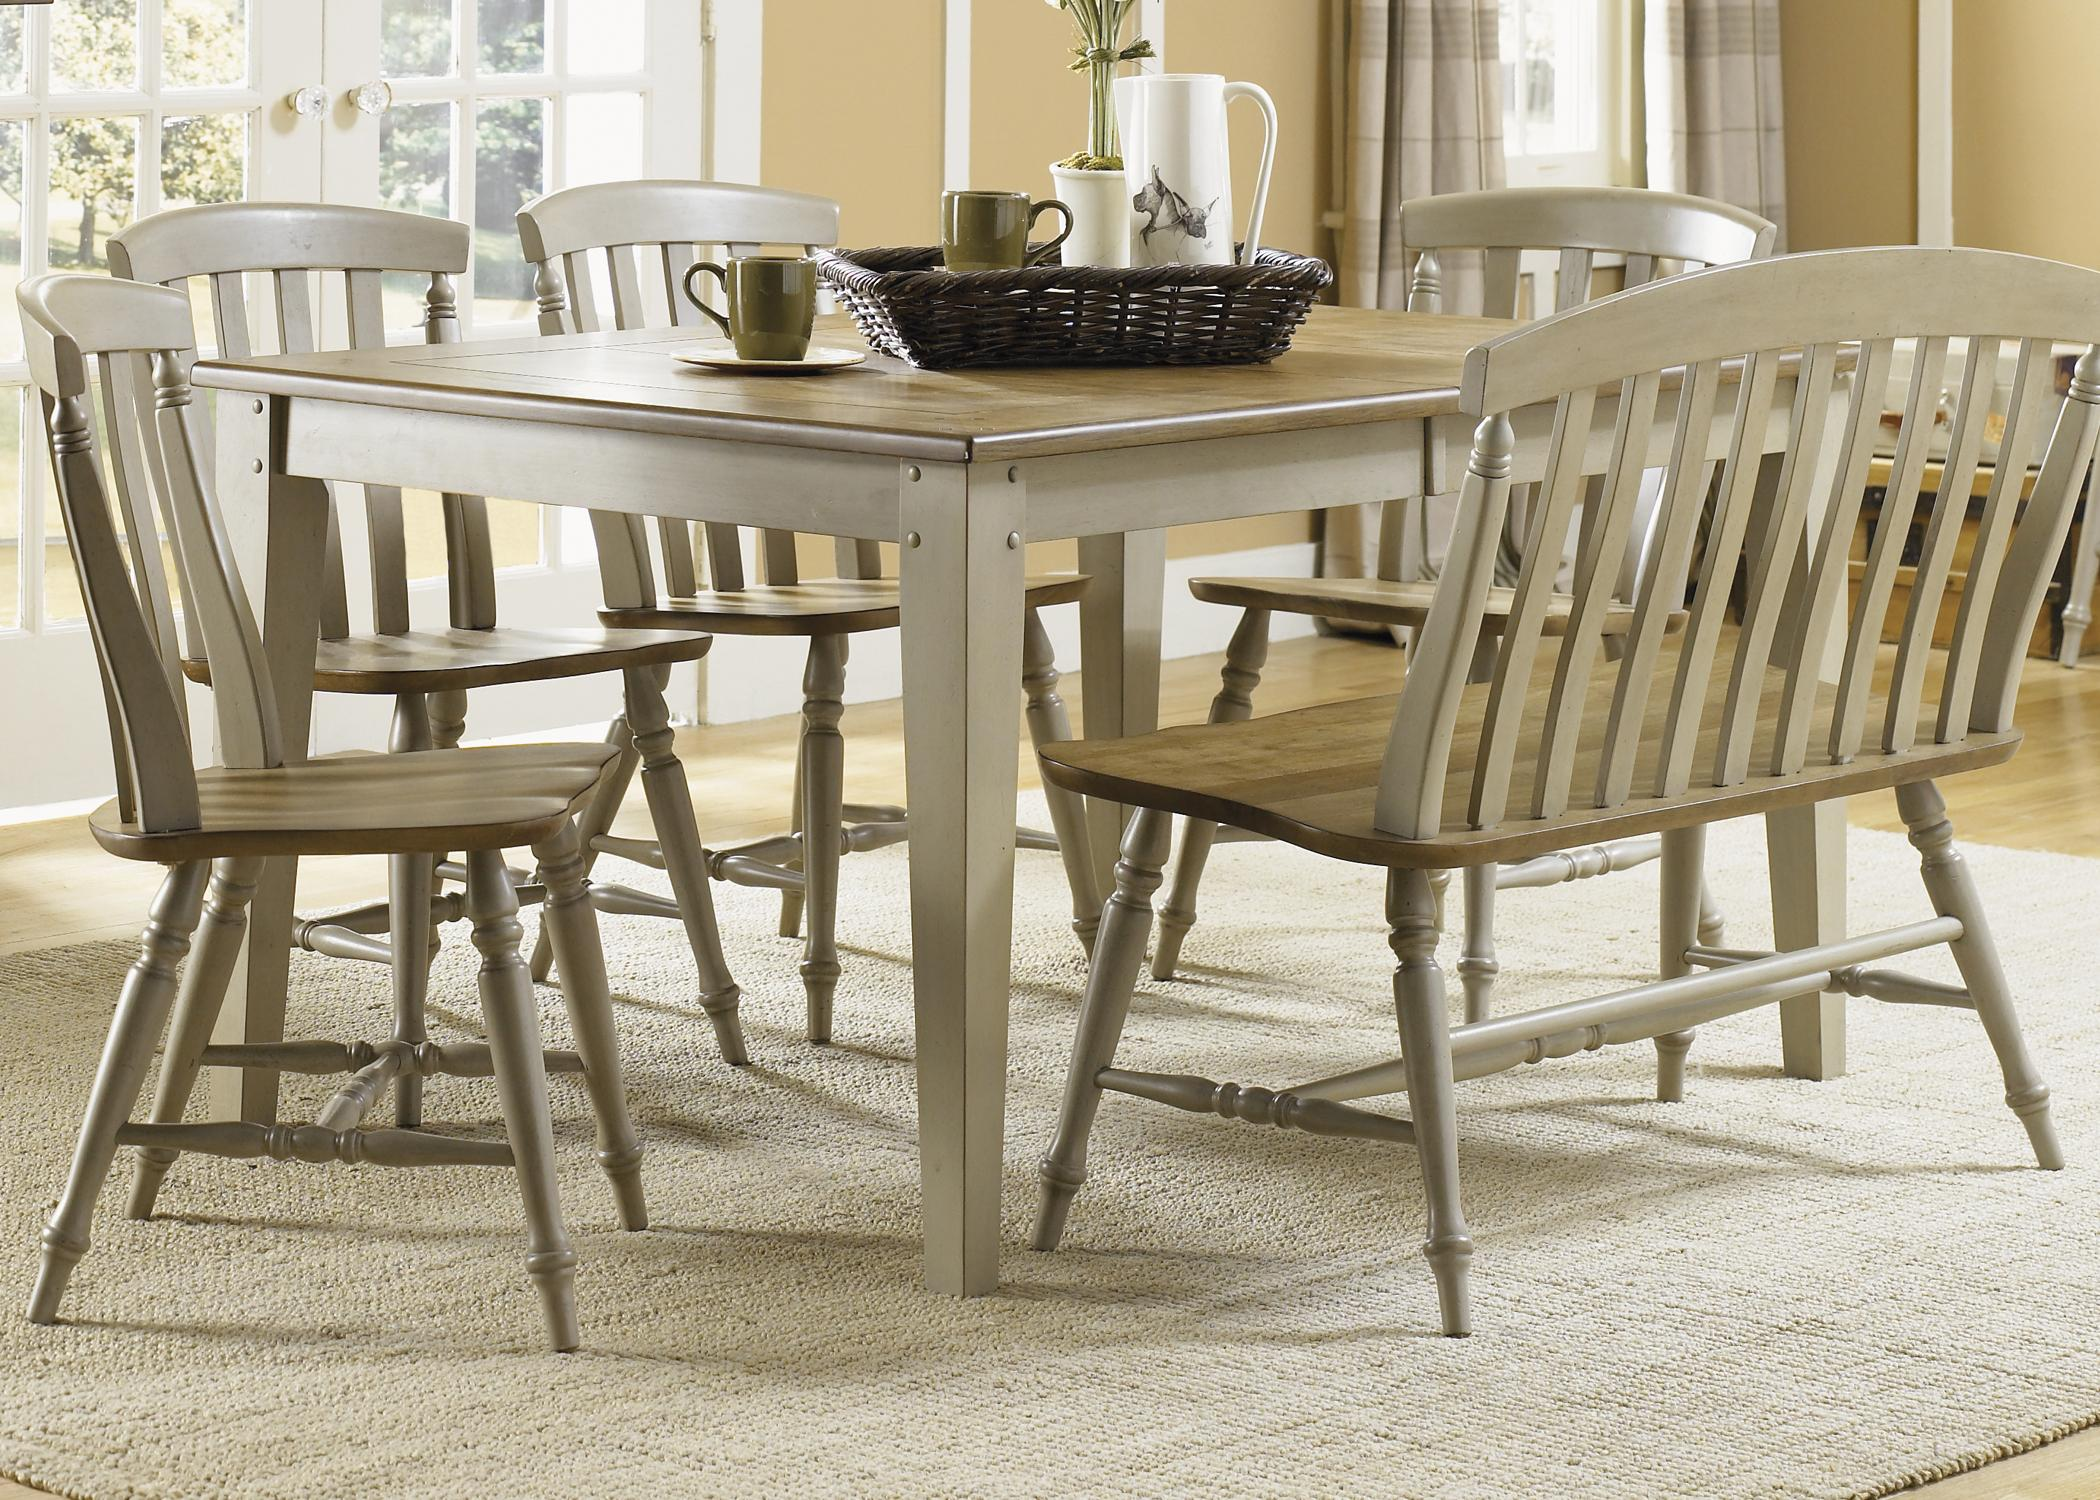 Six Piece Dining Table Set with Chairs and Bench by Liberty